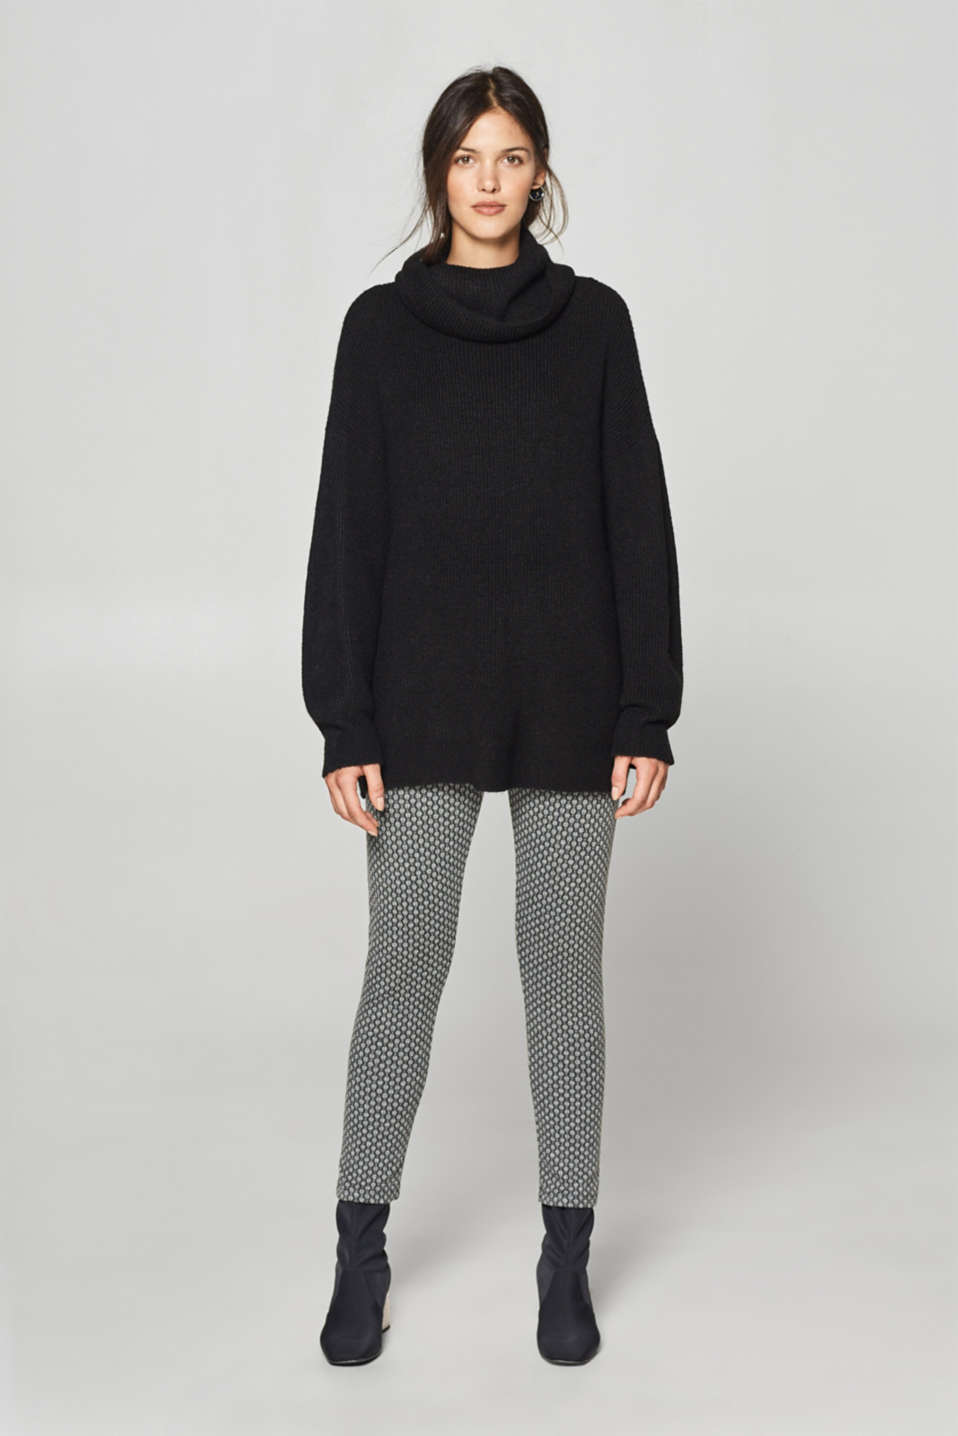 Esprit - 7/8-length leggings with a jacquard pattern